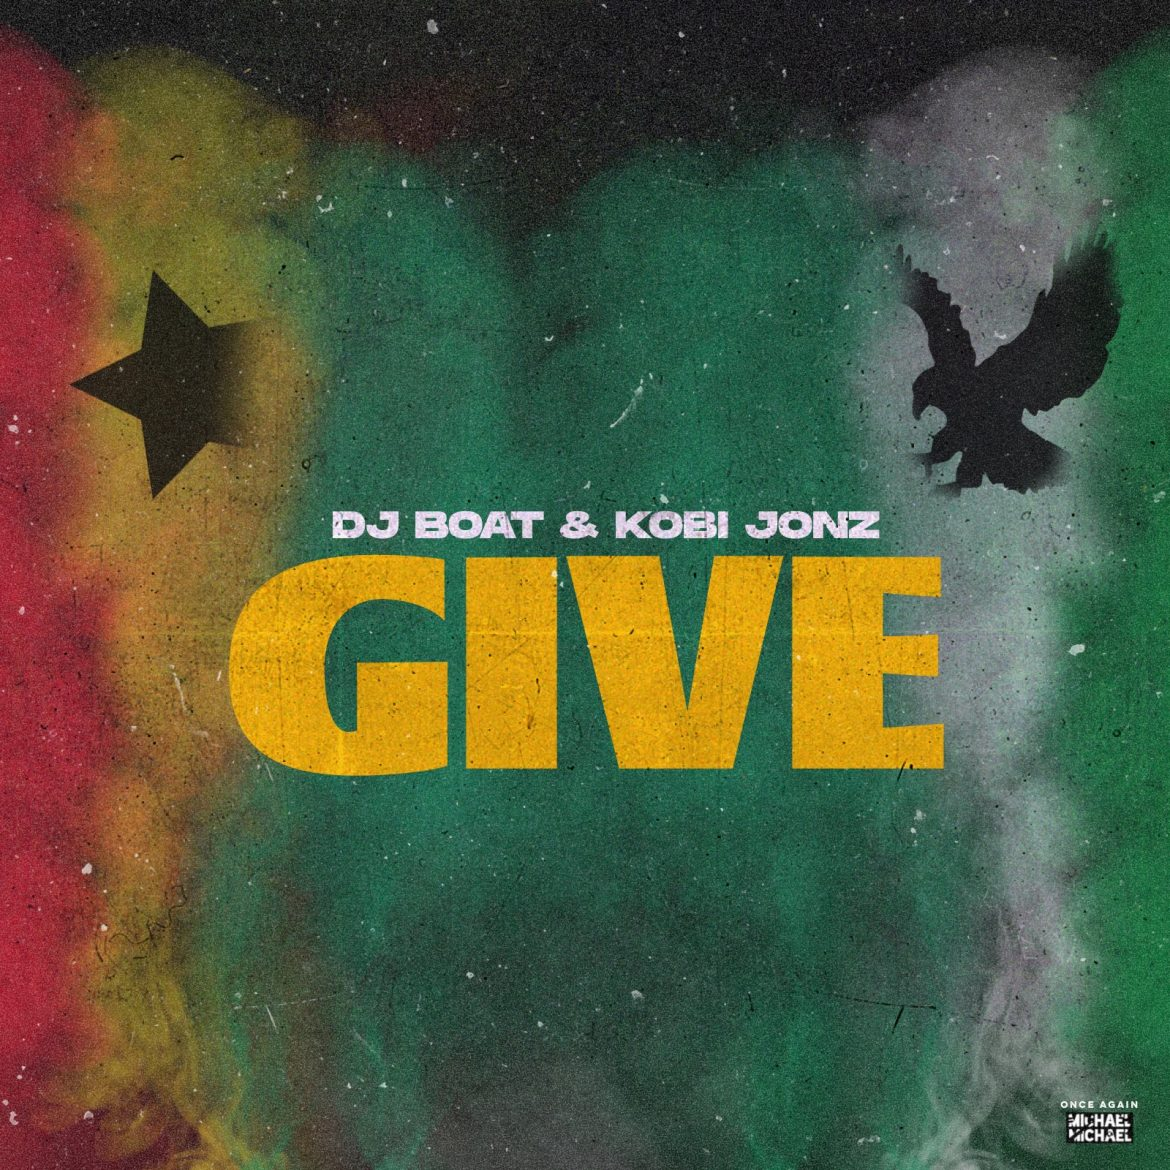 """""""Give"""" is a brand new track by Kobi Jonz & DJ Boat. Produced by David Meli, Give has a classic indigenous feel with traditional-inspired drum rhythms and bass guitar featured in the backbeat and synthetic chords cushioning Kobi's distinct vocals. It is a fusion of sounds from both Ghana and Nigeria inspired by a strong attraction between lovers -- a relationship between two people that is meant to mirror the mutual influence between the two music scenes. The release date is Wednesday, May 29th, 2019 and you can listen privately here. Kobi's last EP, """"Xylem"""" has over 1.5 million streams across platforms, and his work has been praised by OkayAfrica, Culture Custodian, and Bella Naija. Kobi has also collaborated with Falz and opened shows for Mr. Eazi, Burna Boy, and 2face. We think African Musik Magazine will be interested in """"Give"""", to provide its readers exposure to new, innovative music from a rising artist."""